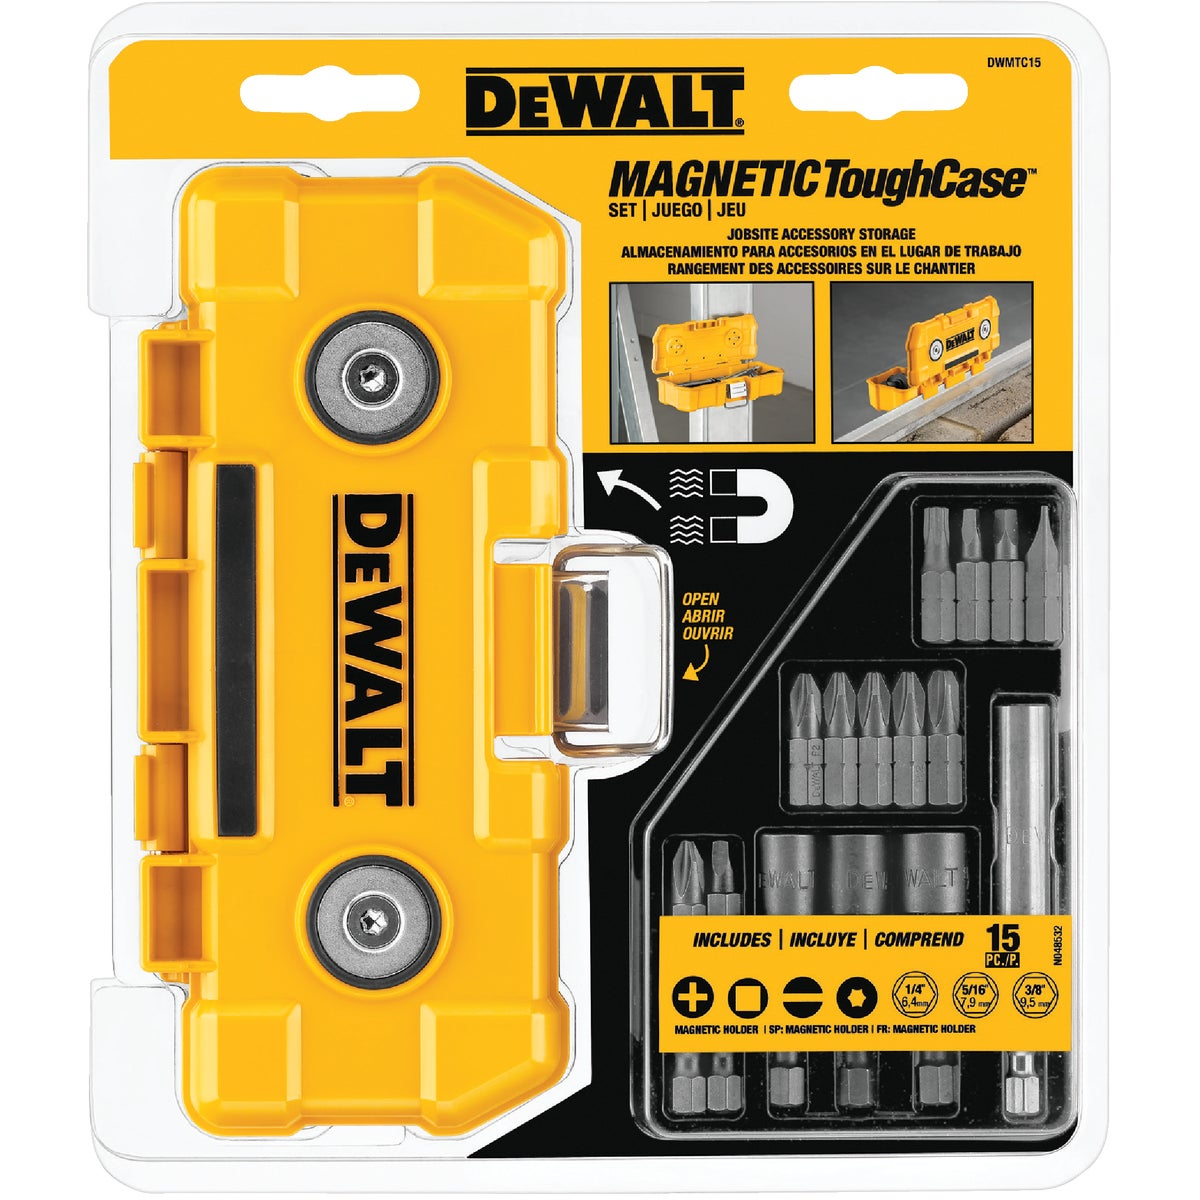 15PC SCREWDRIVING SET - DWMTC15 by DeWalt